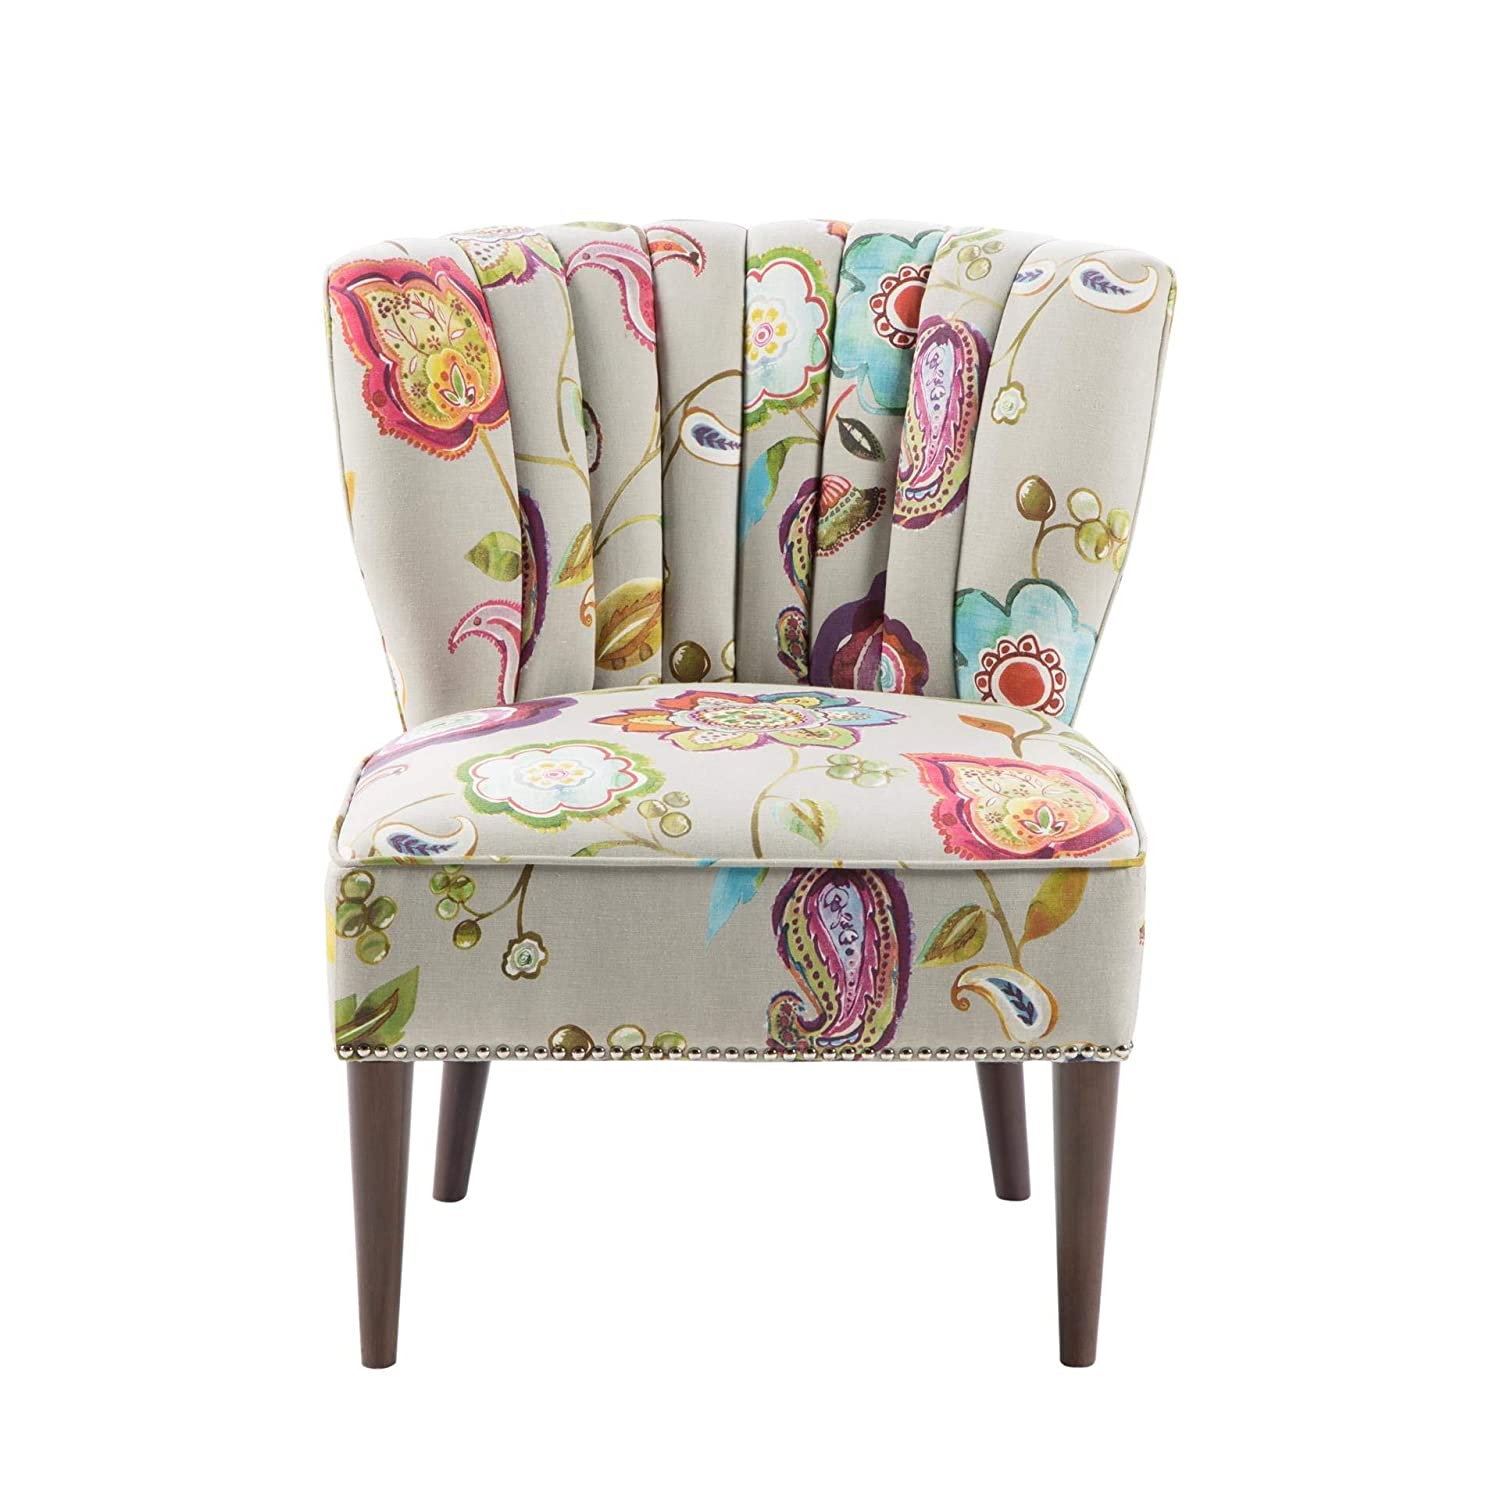 Madison park korey accent chairs hardwood birch wood fabric living room chairs khaki purple blue floral paisley style living room sofa furniture